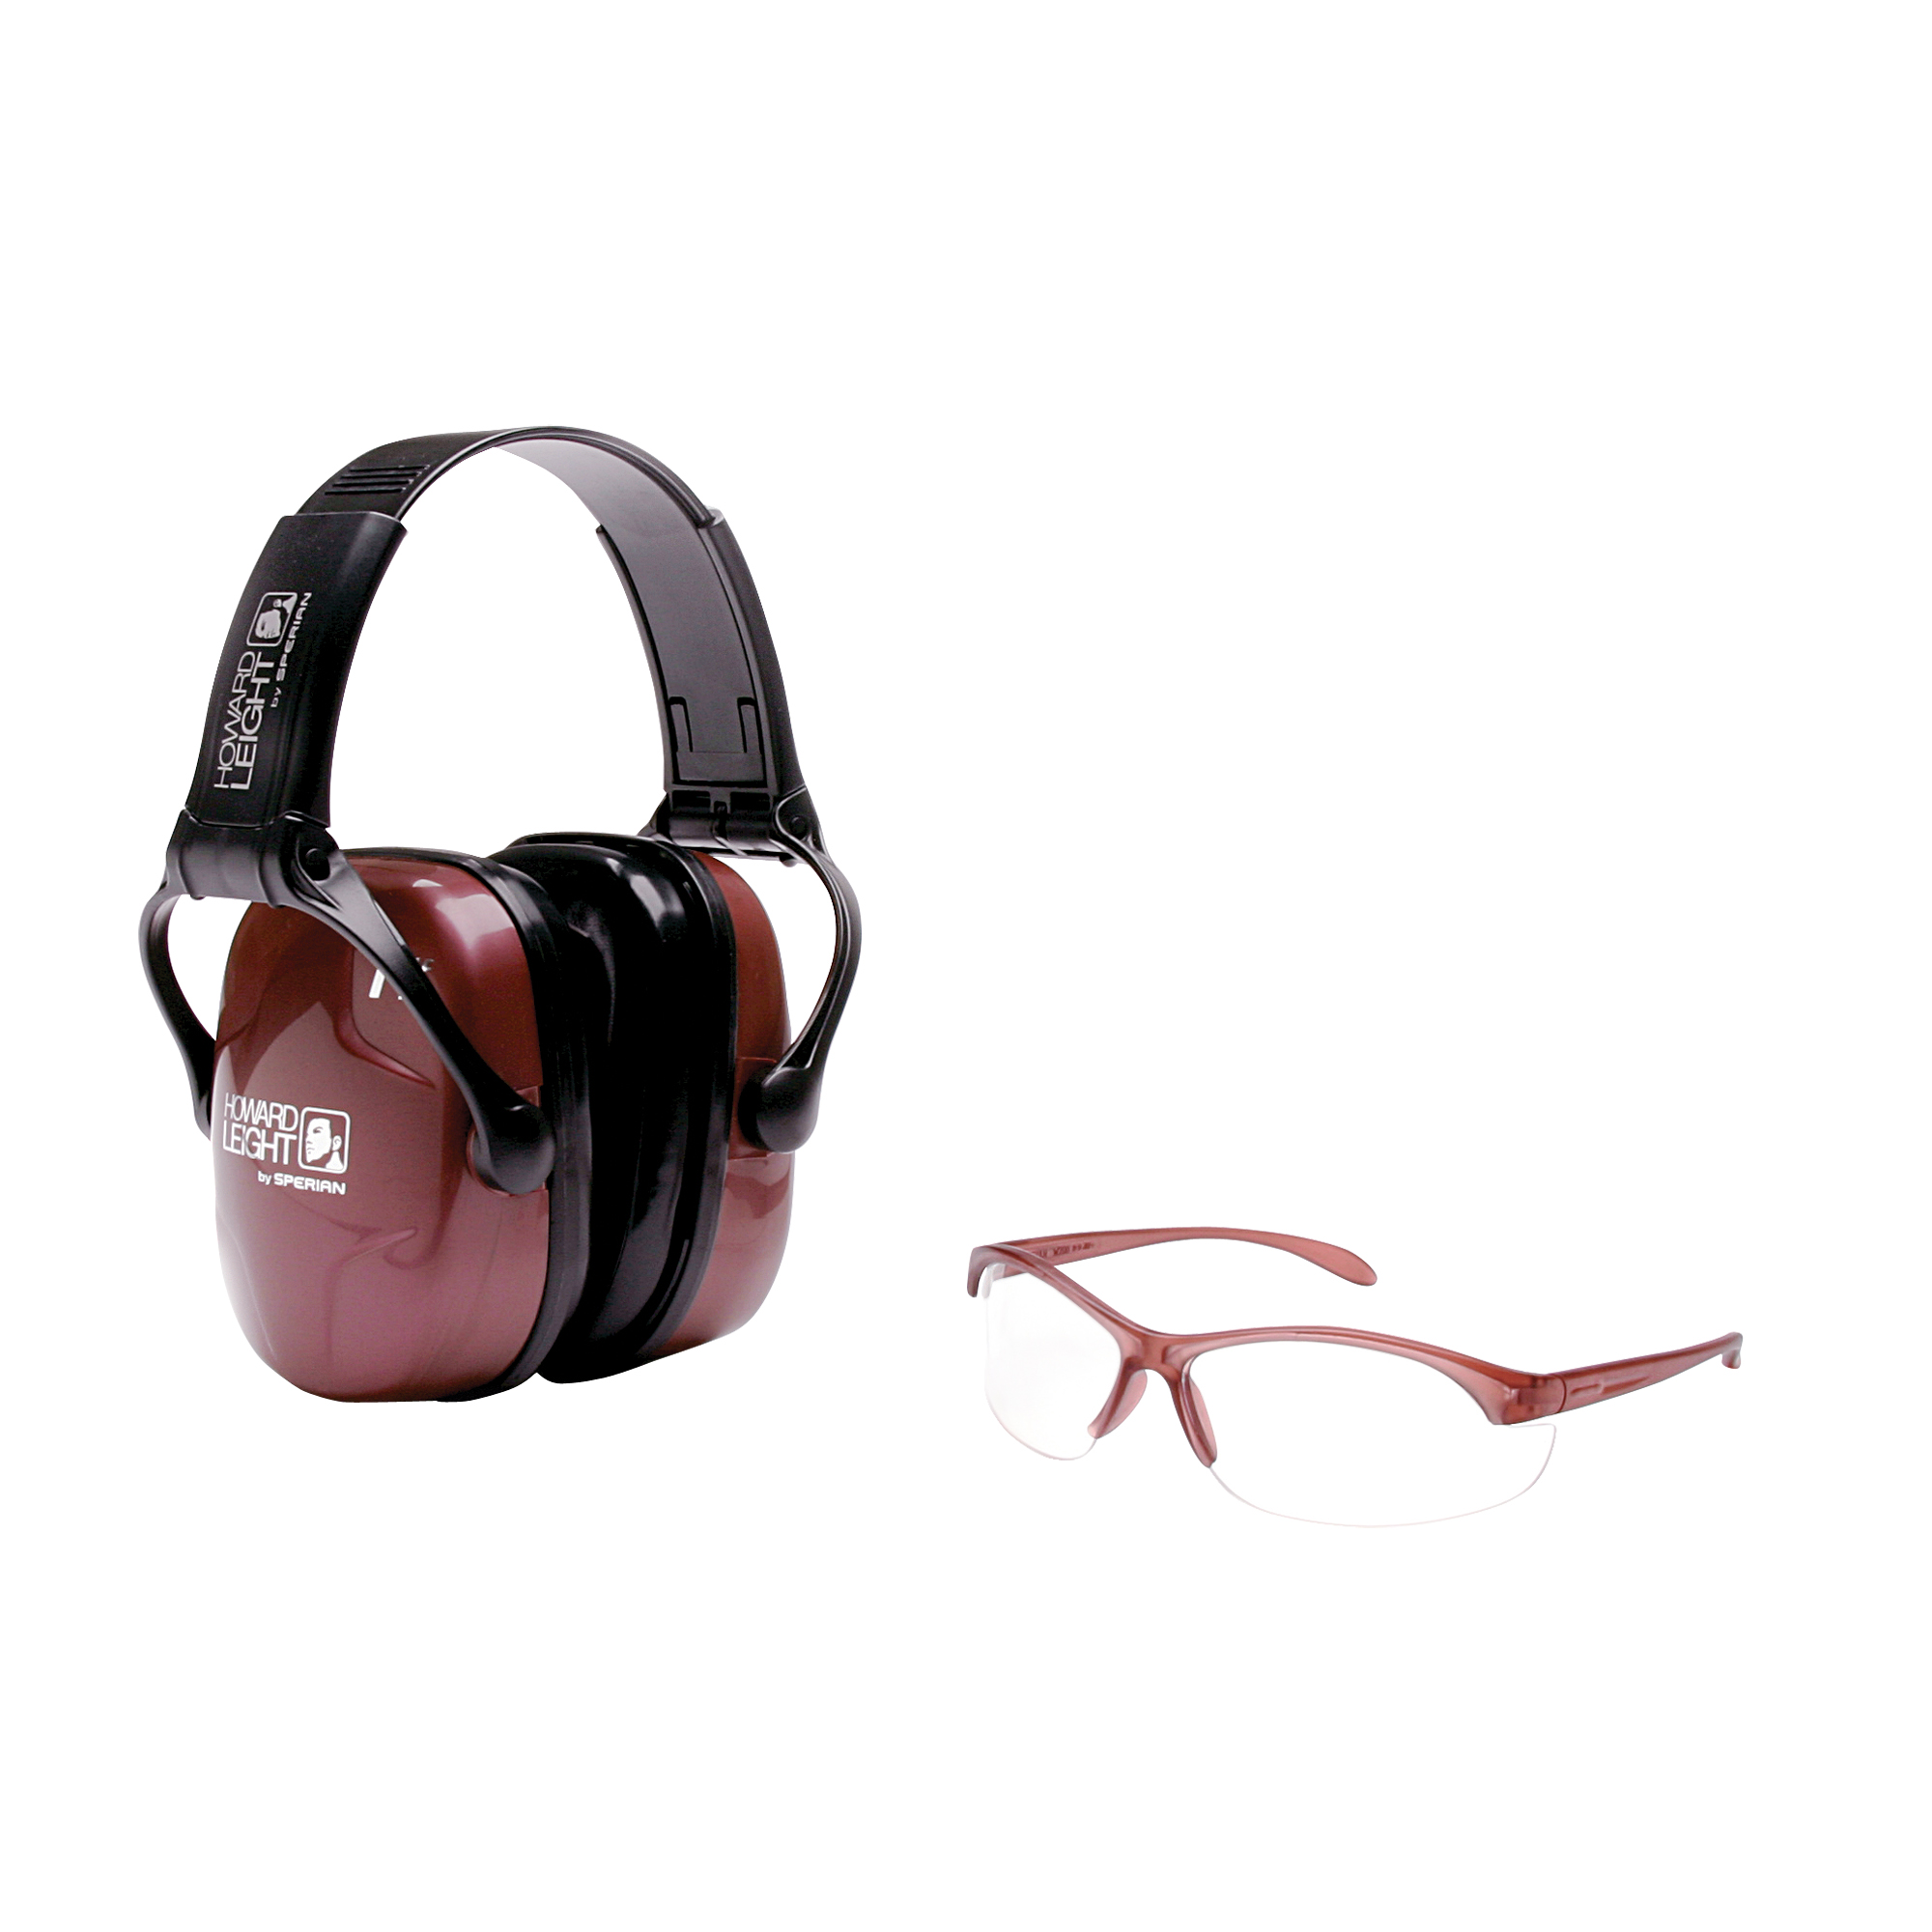 """Women's Shooting Sports Safety Combo Kit is an excellent starter package for women who are new to shooting sports. Designed specifically for the female face"""" the eyewear is narrower across the front"""" shorter at the temple and slimmer in the nose bridge than standard shooting glasses. The safety eyewear also features a clear polycarbonate lens suitable for both indoor and outdoor use"""" as well as an anti-fog lens coating for extended performance. The coordinating ultra-light earmuff carries a Noise Reduction Rating (NRR) of 25 for effective"""" reliable hearing protection for shooting. An adjustable headband and soft ear cushions allow for a custom fit"""" while the folding design makes for convenient storage when not in use."""